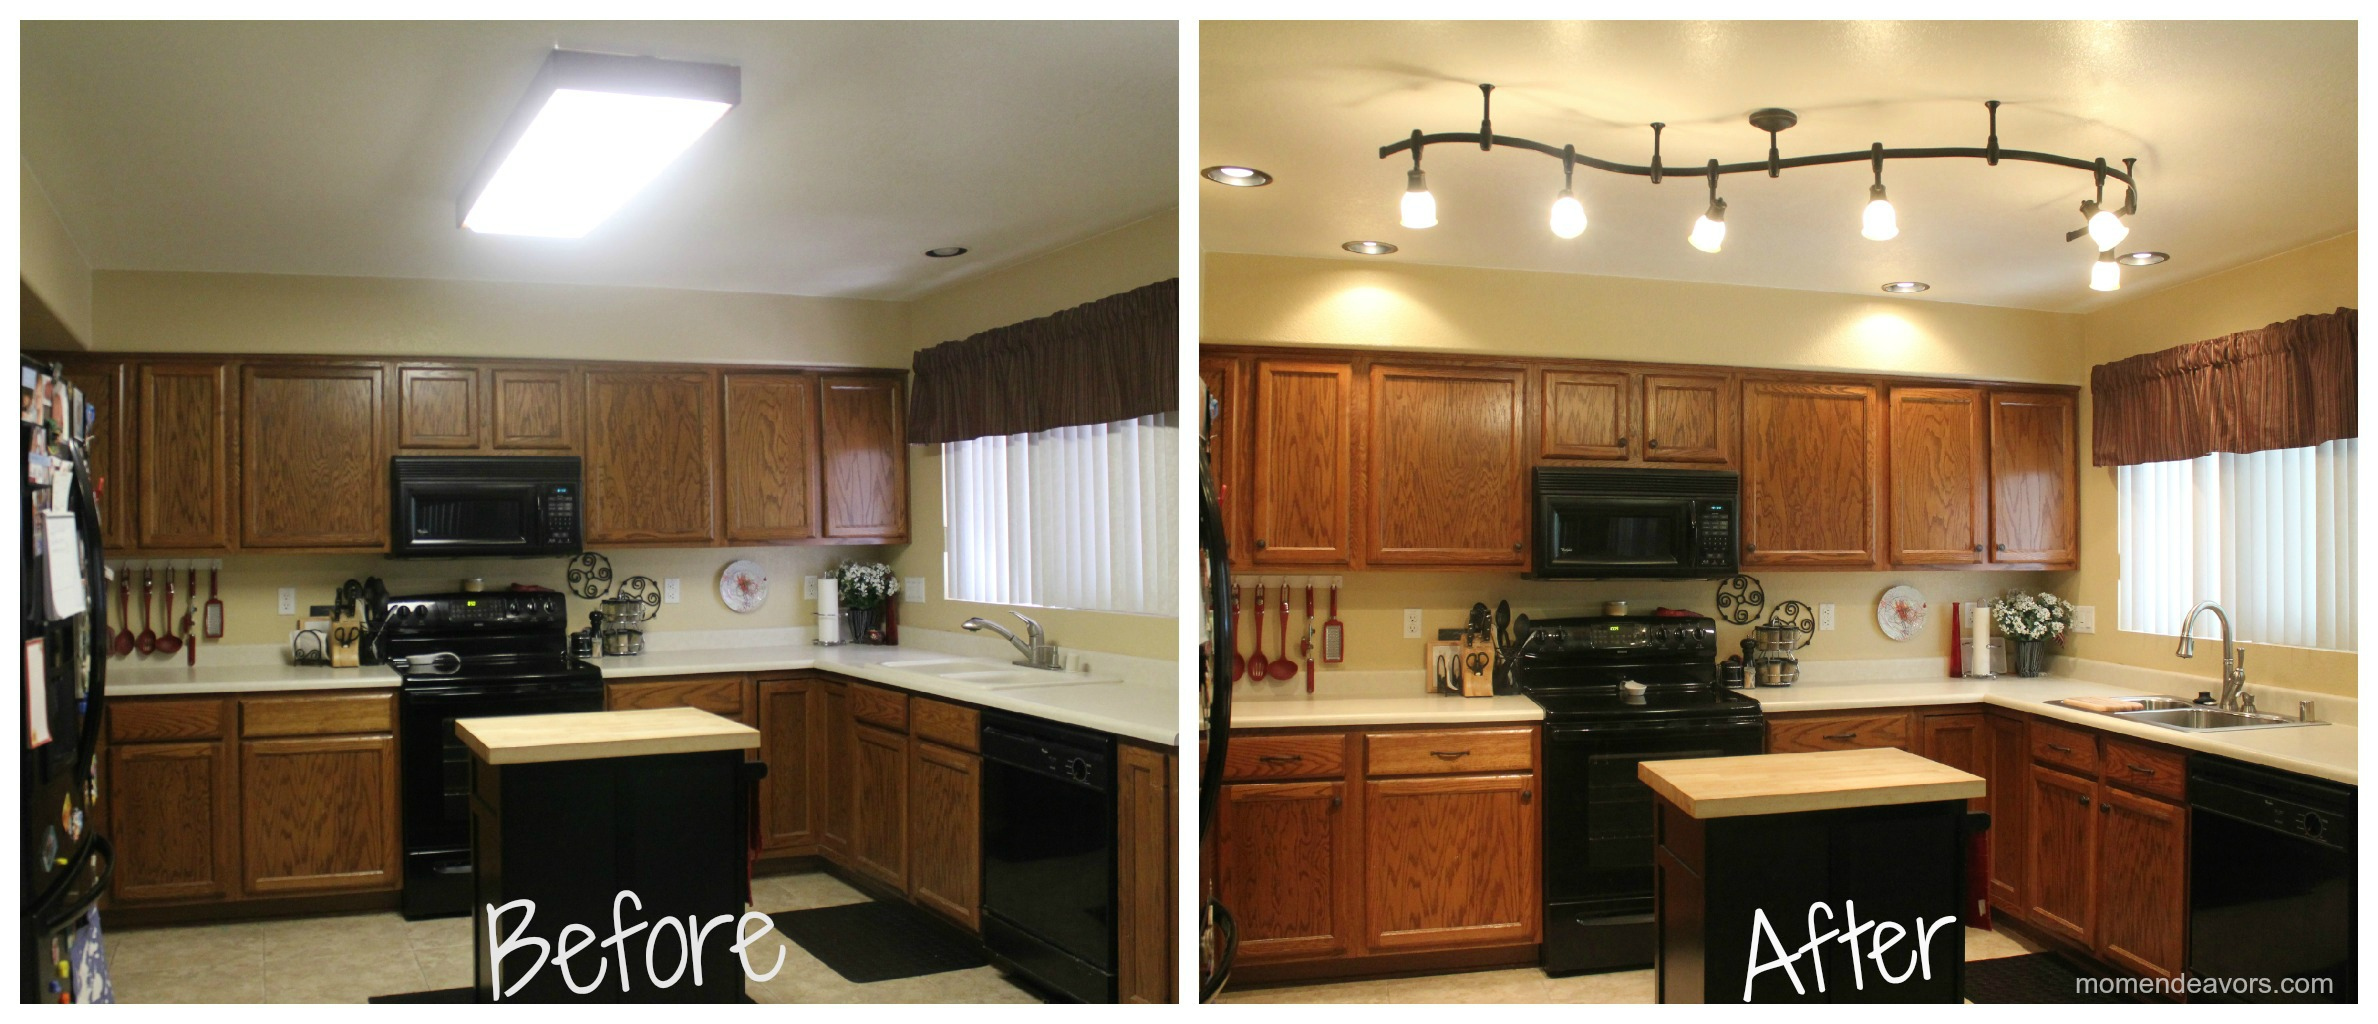 Uncategorized Kitchen Fluorescent Lighting Fixtures mini kitchen remodel new lighting makes a world of difference it